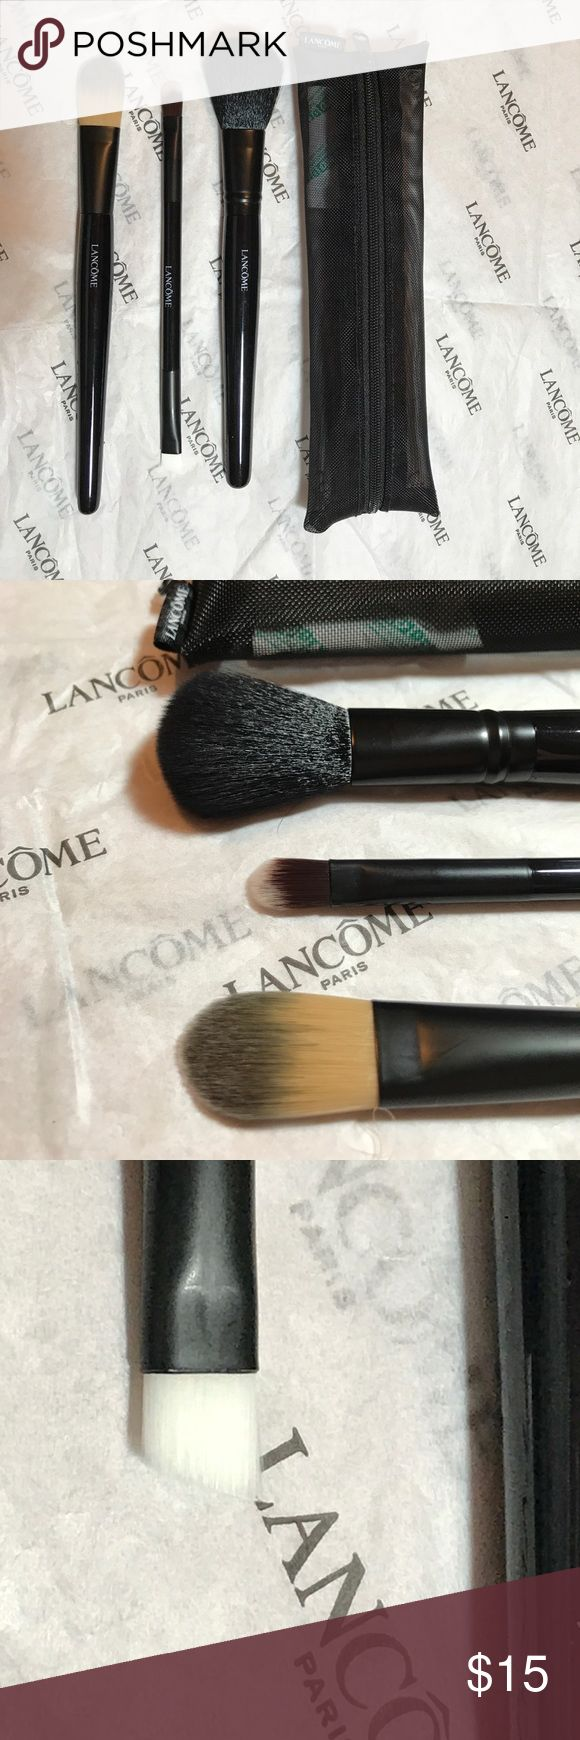 Lancome 3 piece Travel  Brush Set - Sealed-New Lancome 3pc. Travel Brush Set . You will received 3 brushes (dual -ended eyeshadow/liner, blush, foundation) with black travel case. New/Sealed/ no box Lancome Makeup Brushes & Tools